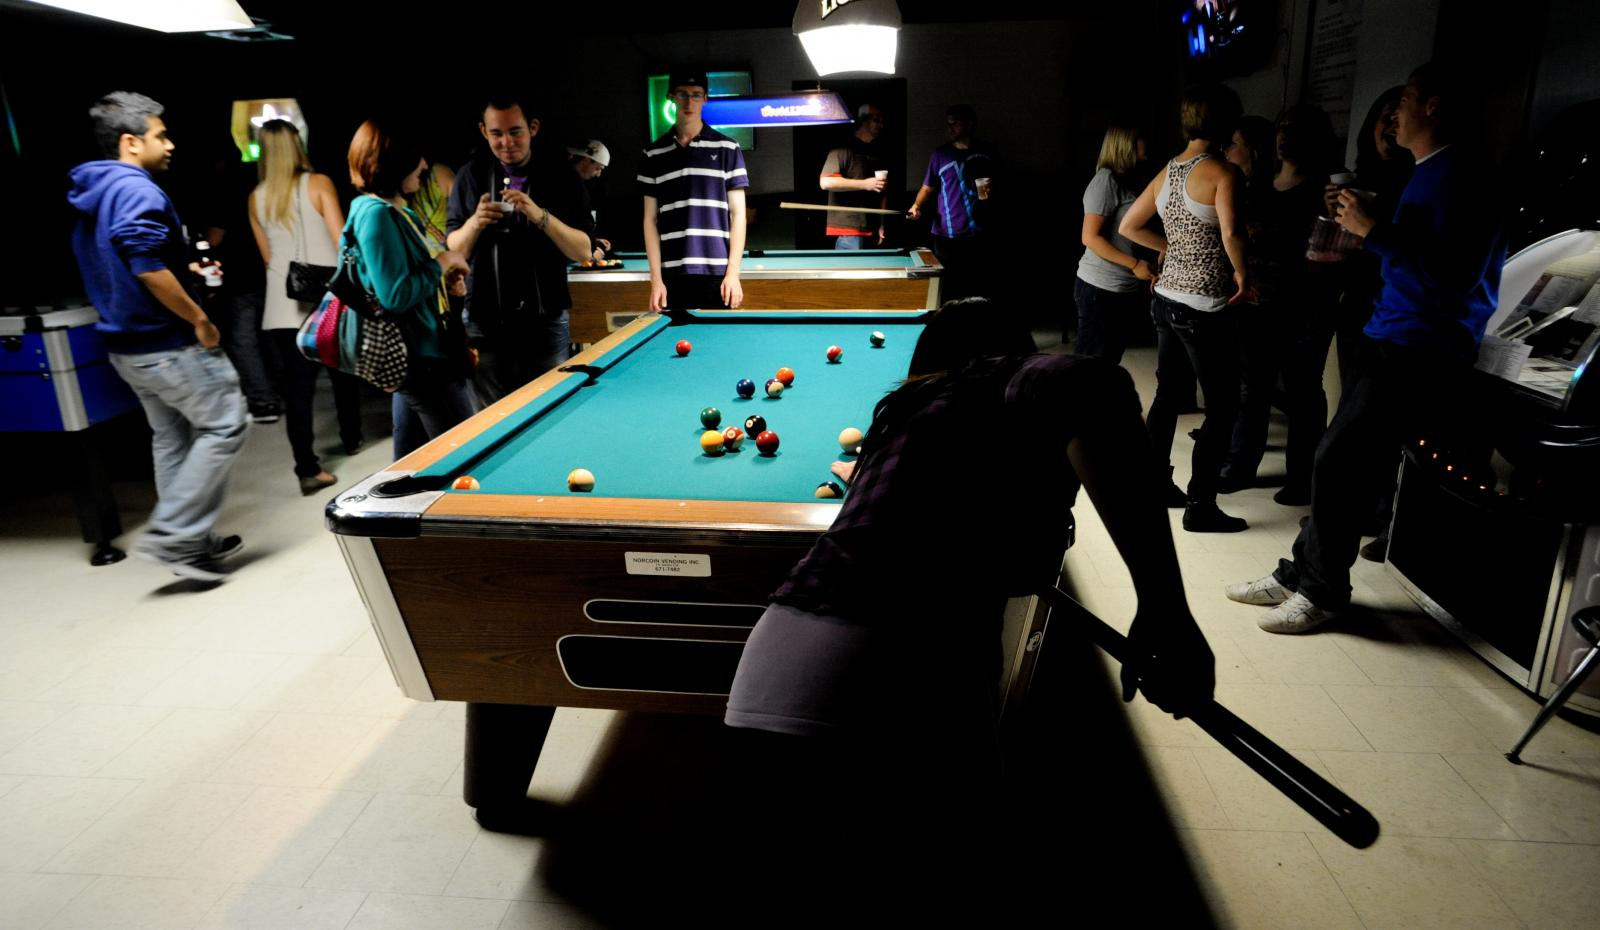 People stand around a pool table.